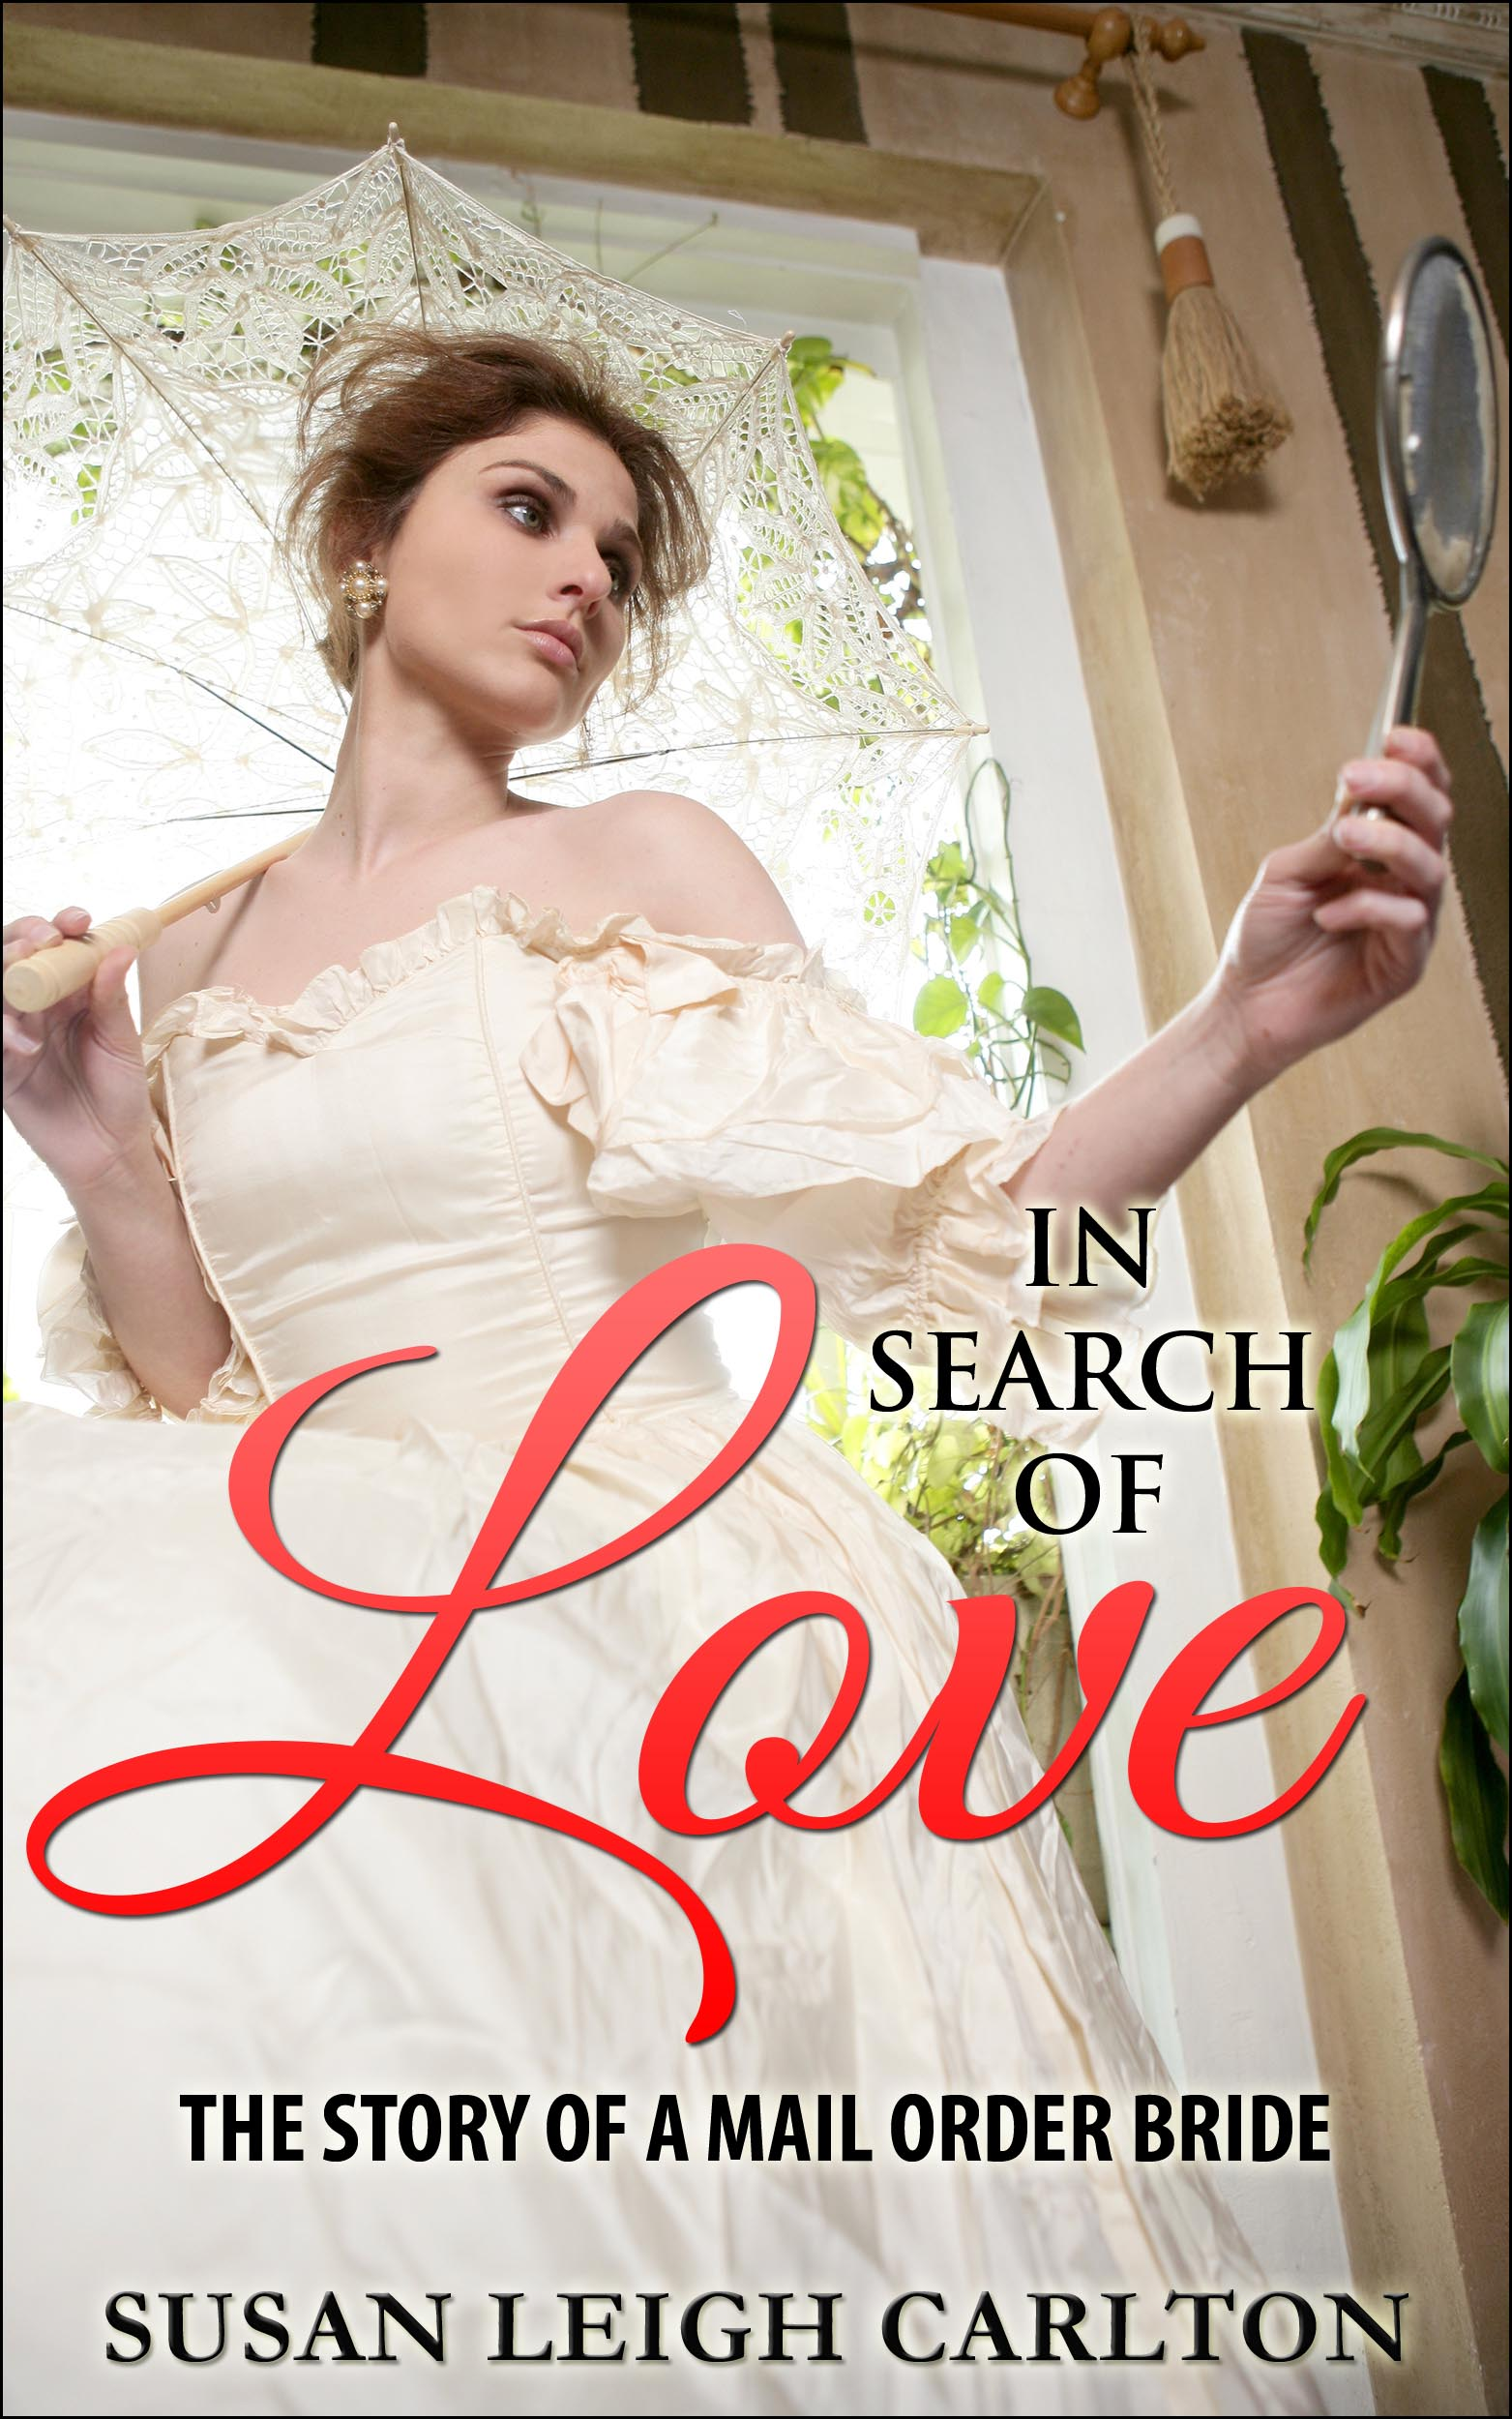 In Search Of Love: The Story of A Mail Order Bride